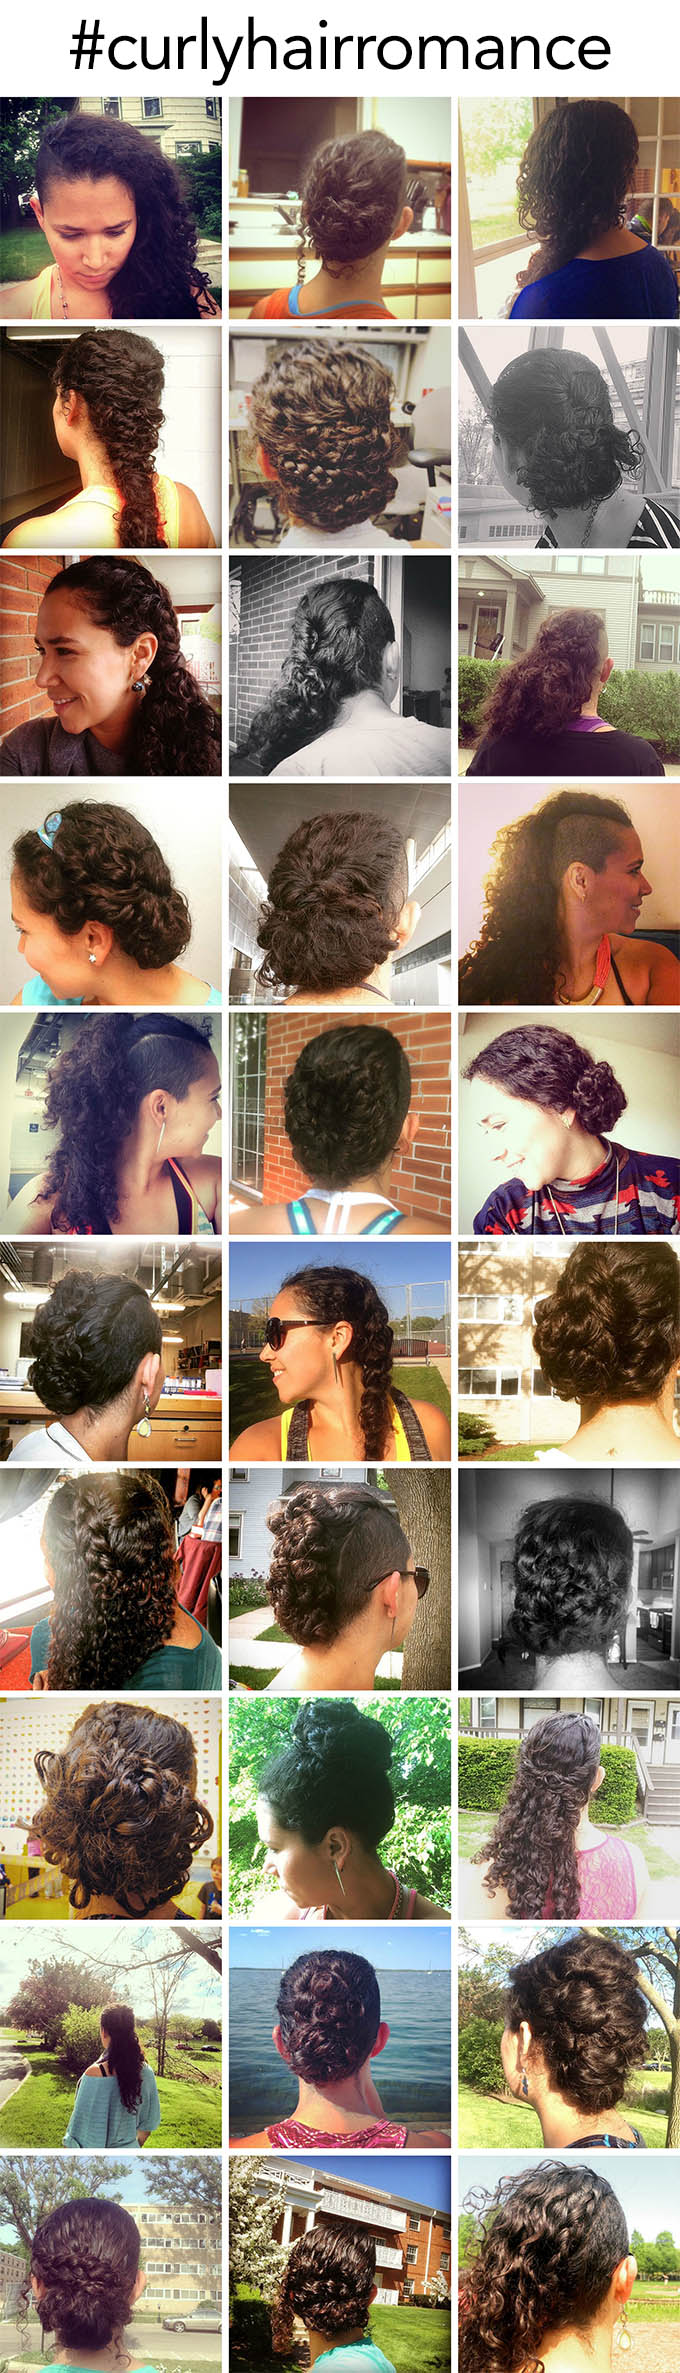 Hair Romance - Ana does 30 Curly Hairstyles in 30 Days